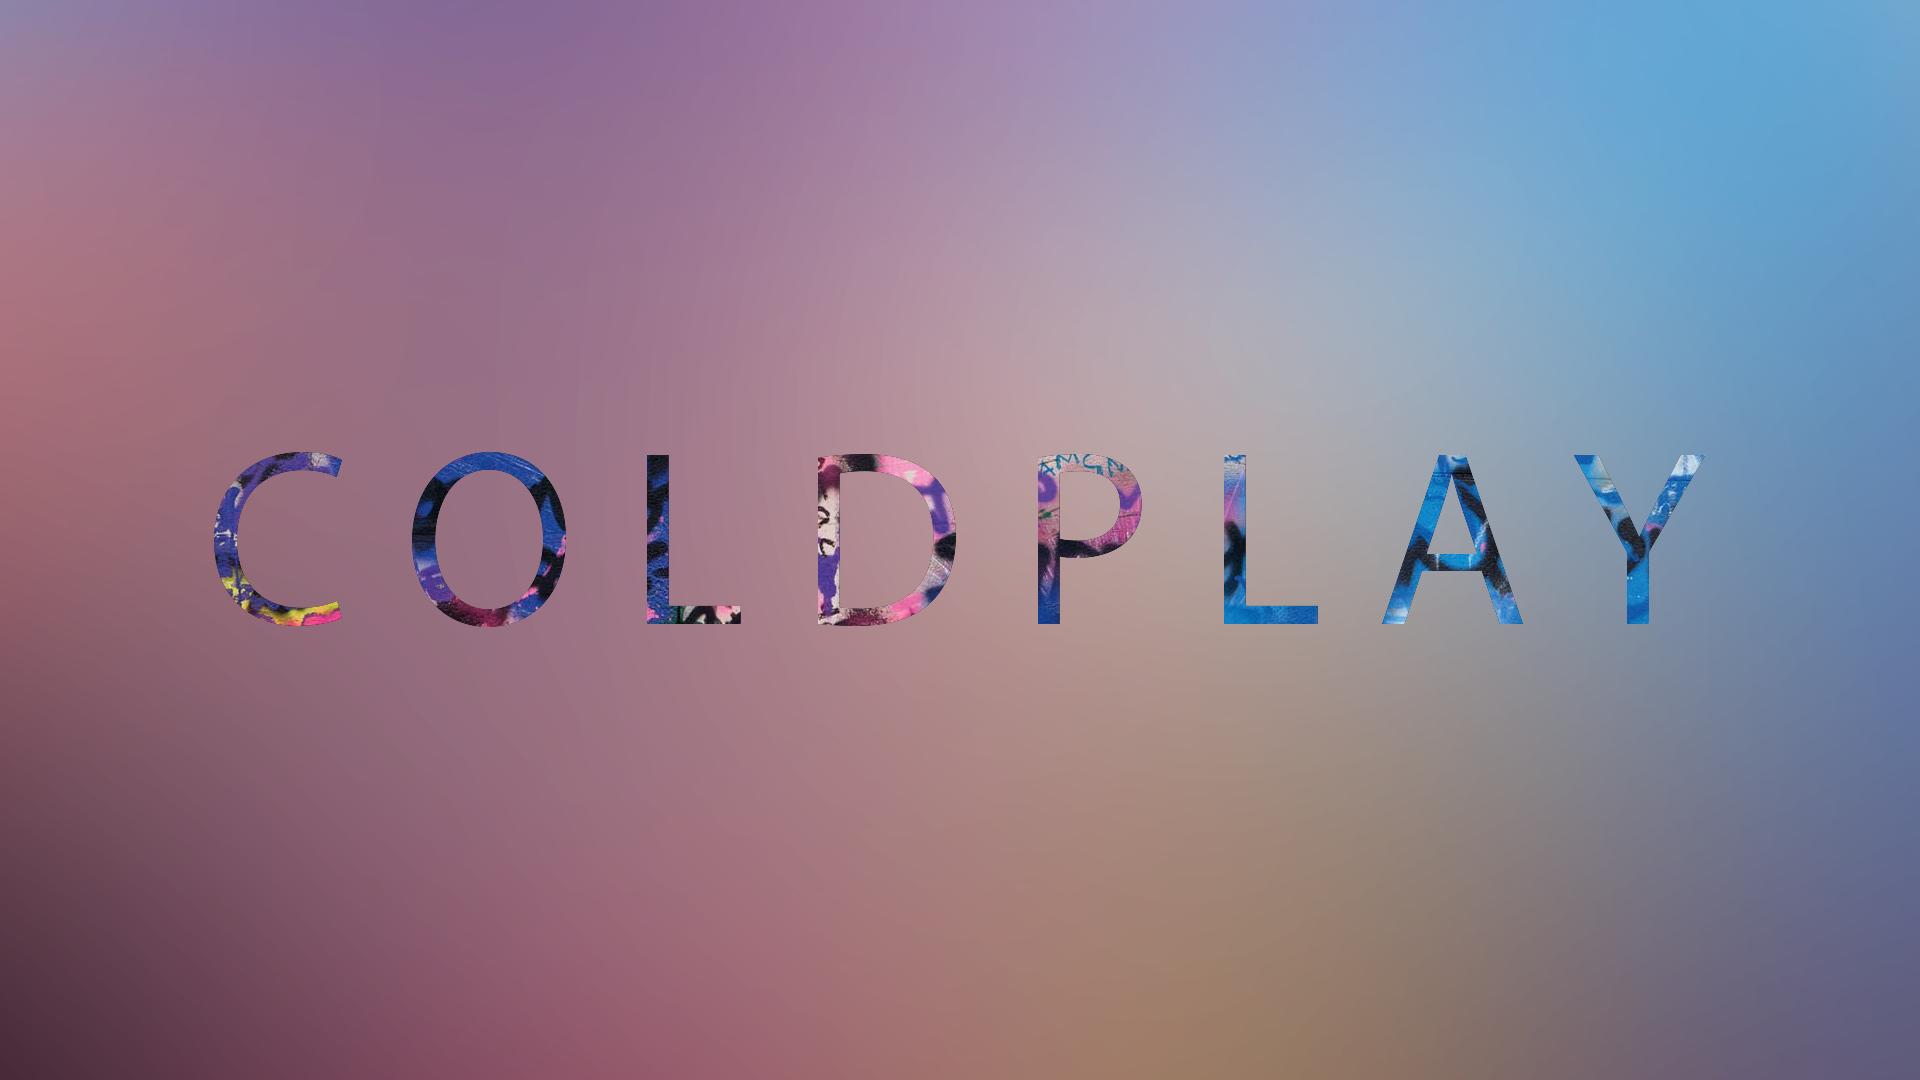 Coldplay-Viva-La-Vida-Parachutes-Rush-Blood-To-%C2%AB-Tiled-wallpaper-wp3803872